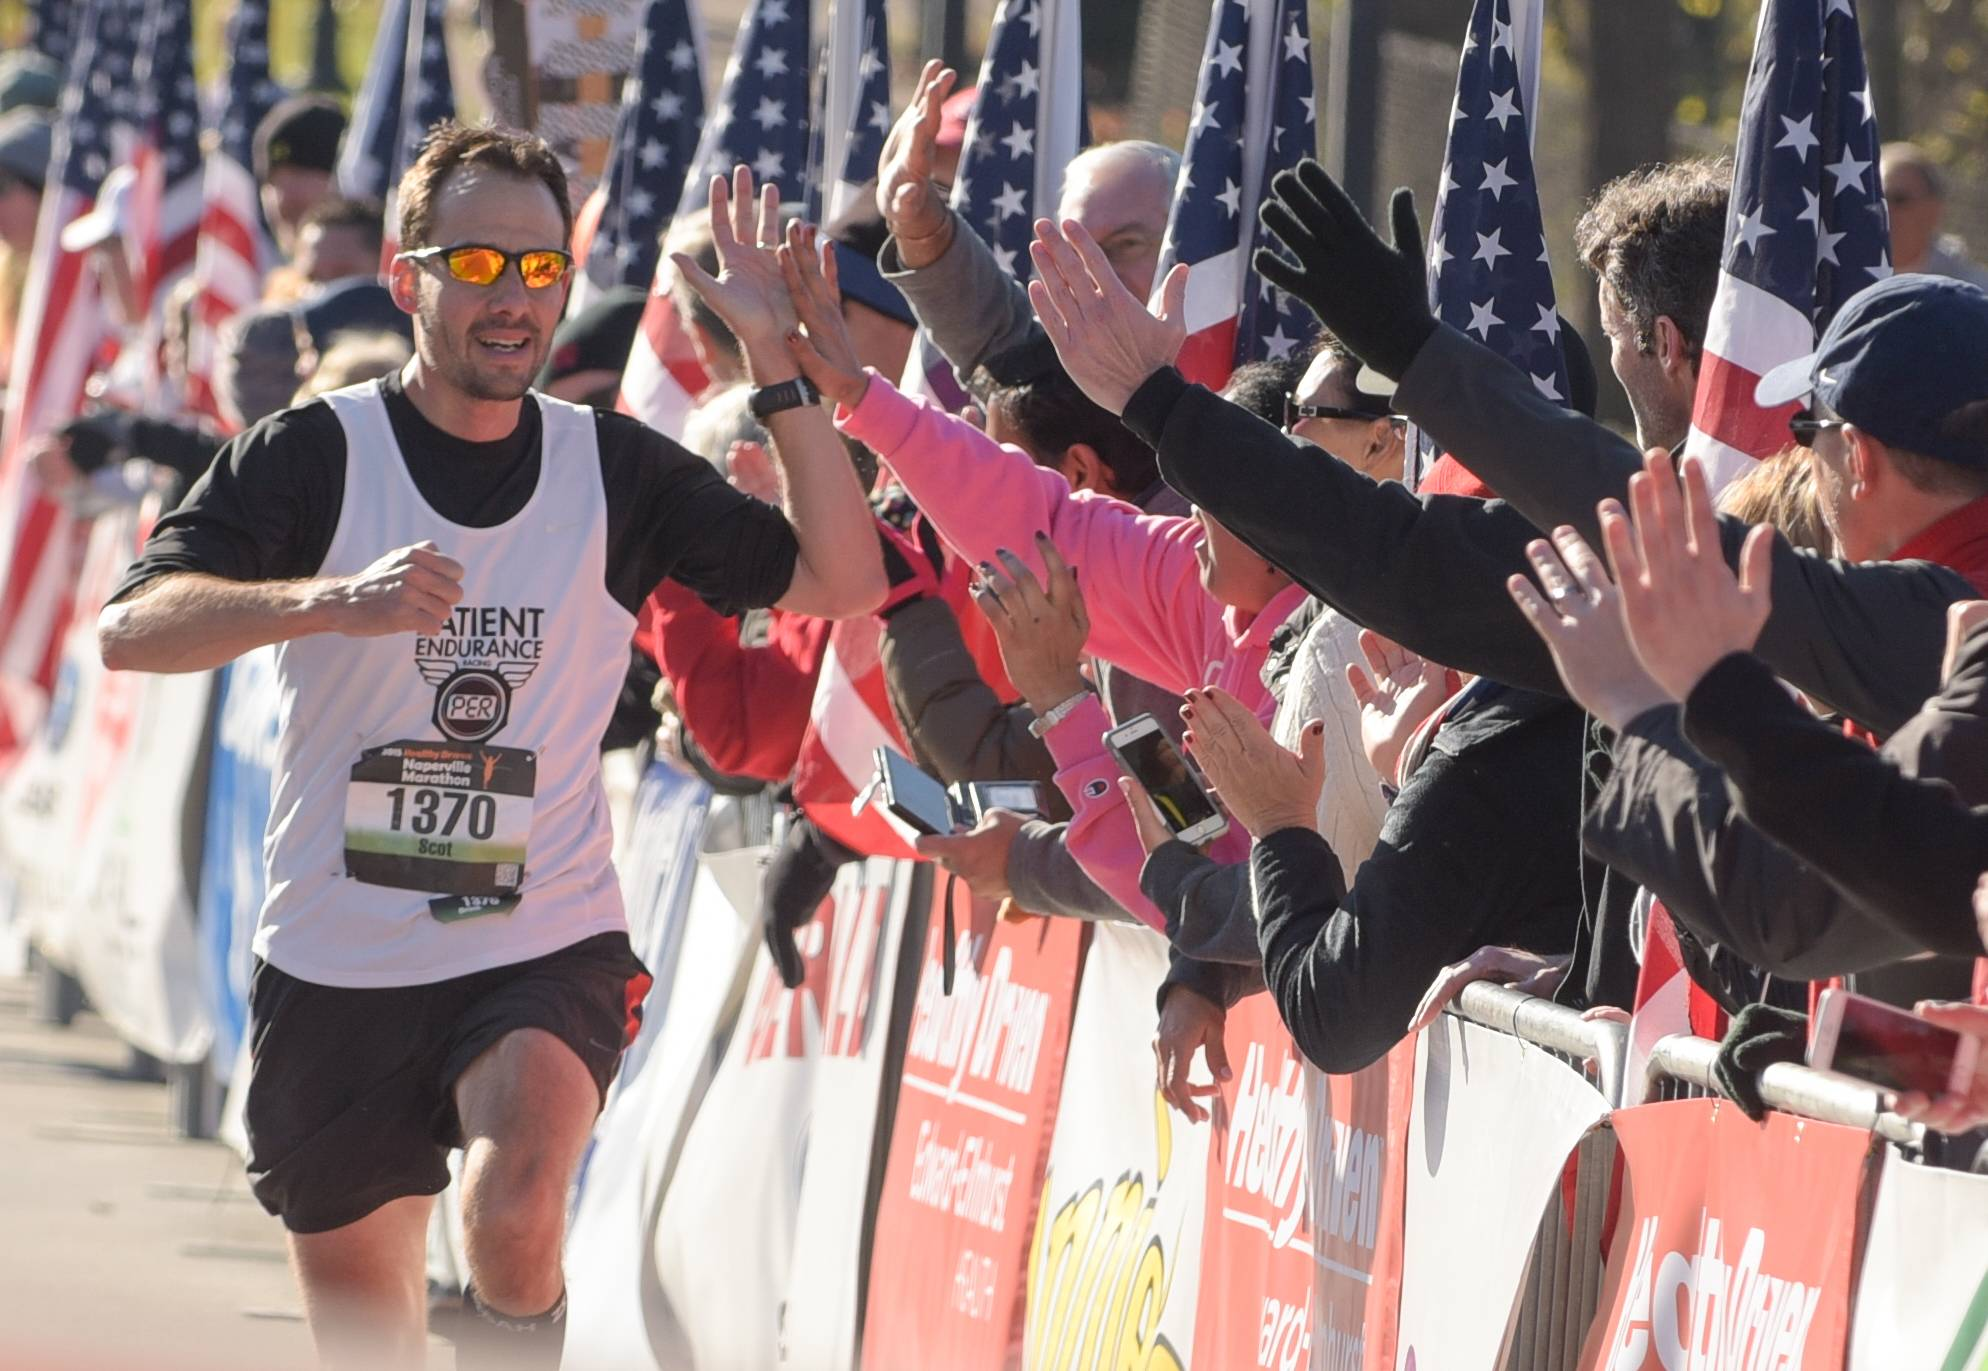 Runners will take to Naperville streets Sunday morning for the fifth annual Healthy Driven Half Marathon and 5K, which doesn't include a full marathon for the first time this year.